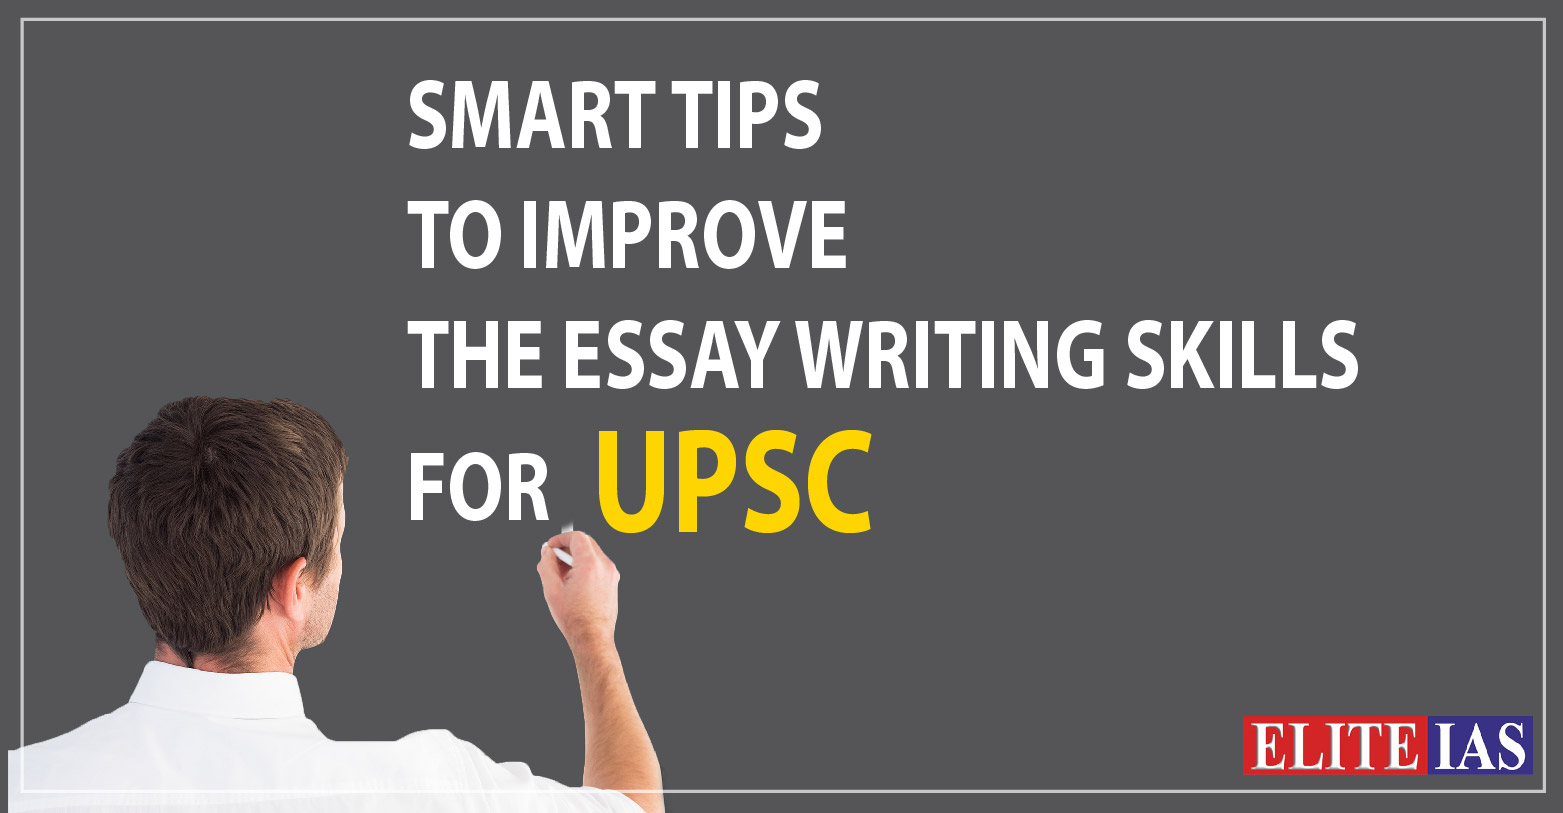 Smart Tips To Improve the Essay Writing Skills For UPSC